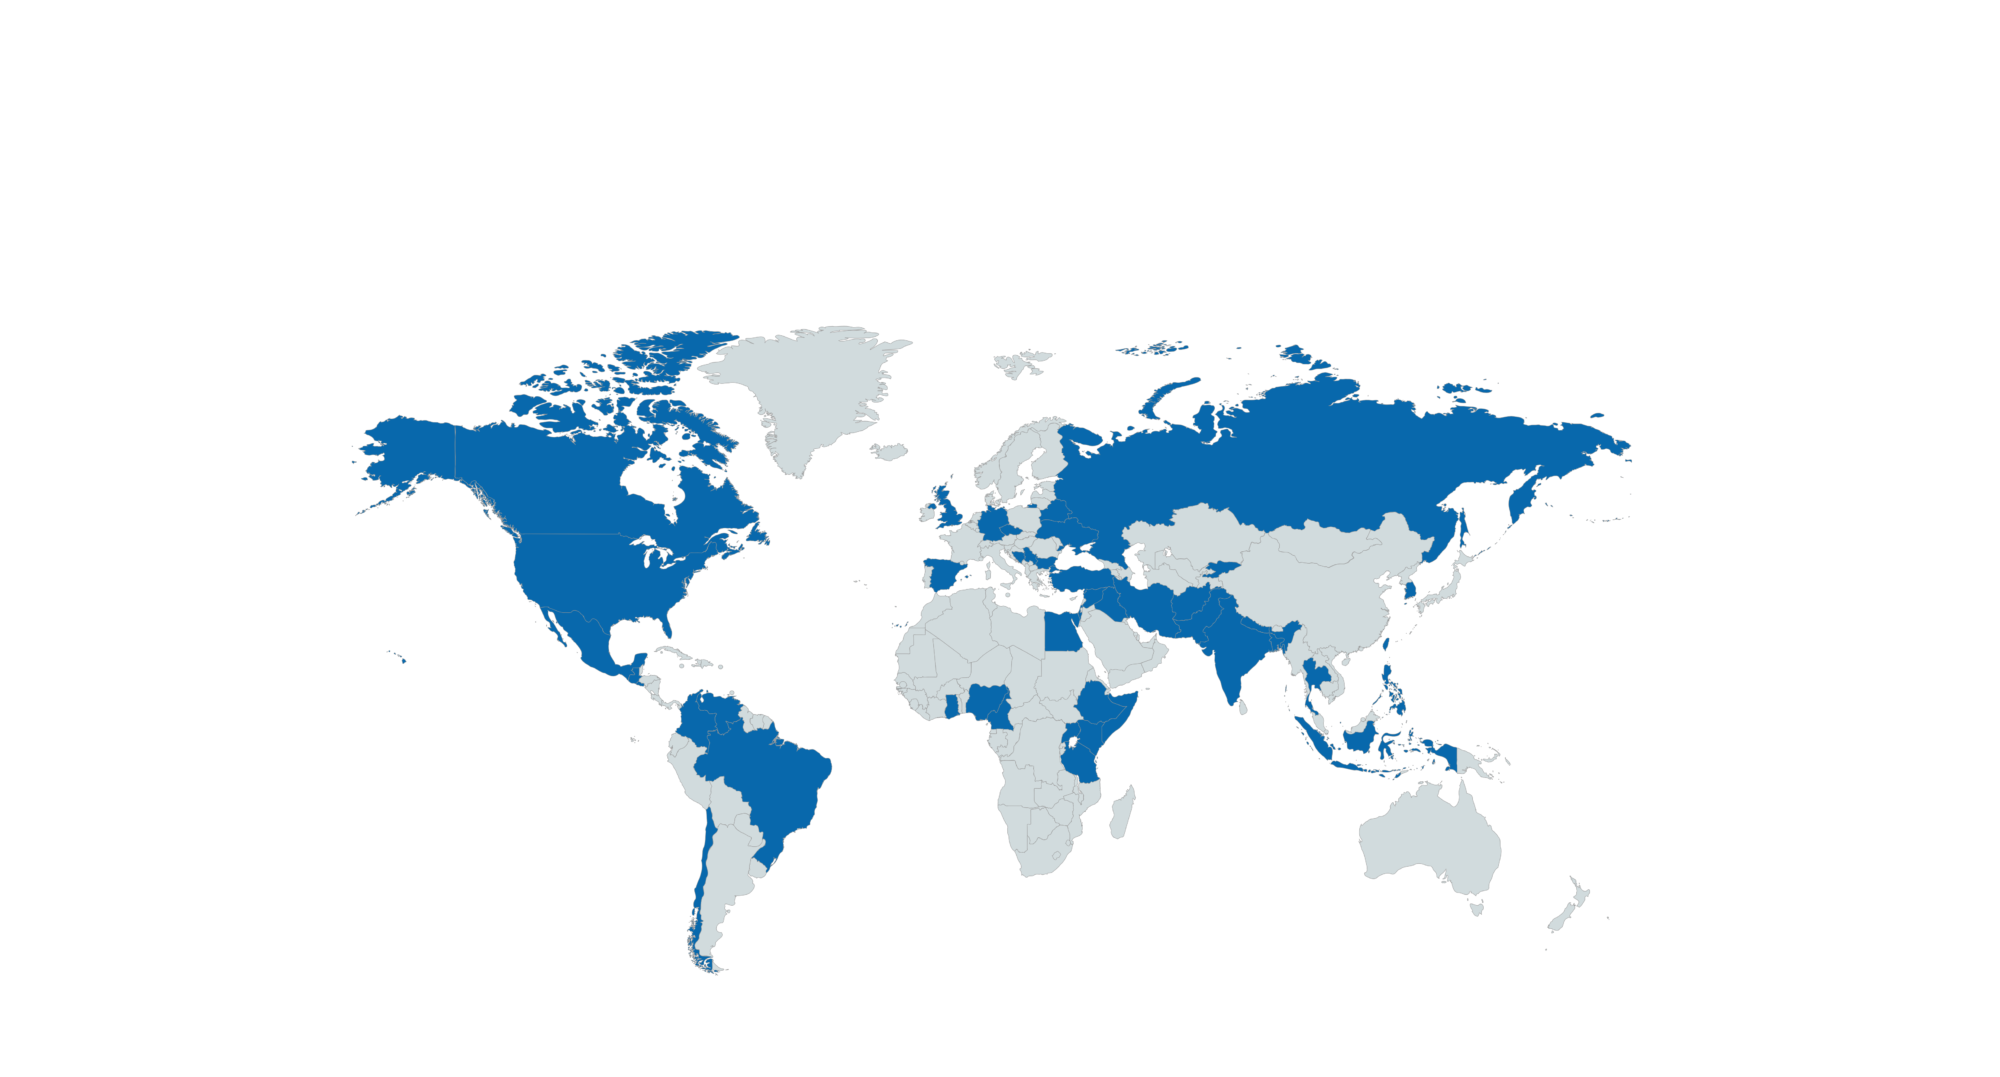 World Map with the Countries of origin of the students of the Master for Human Rights marked in Blue